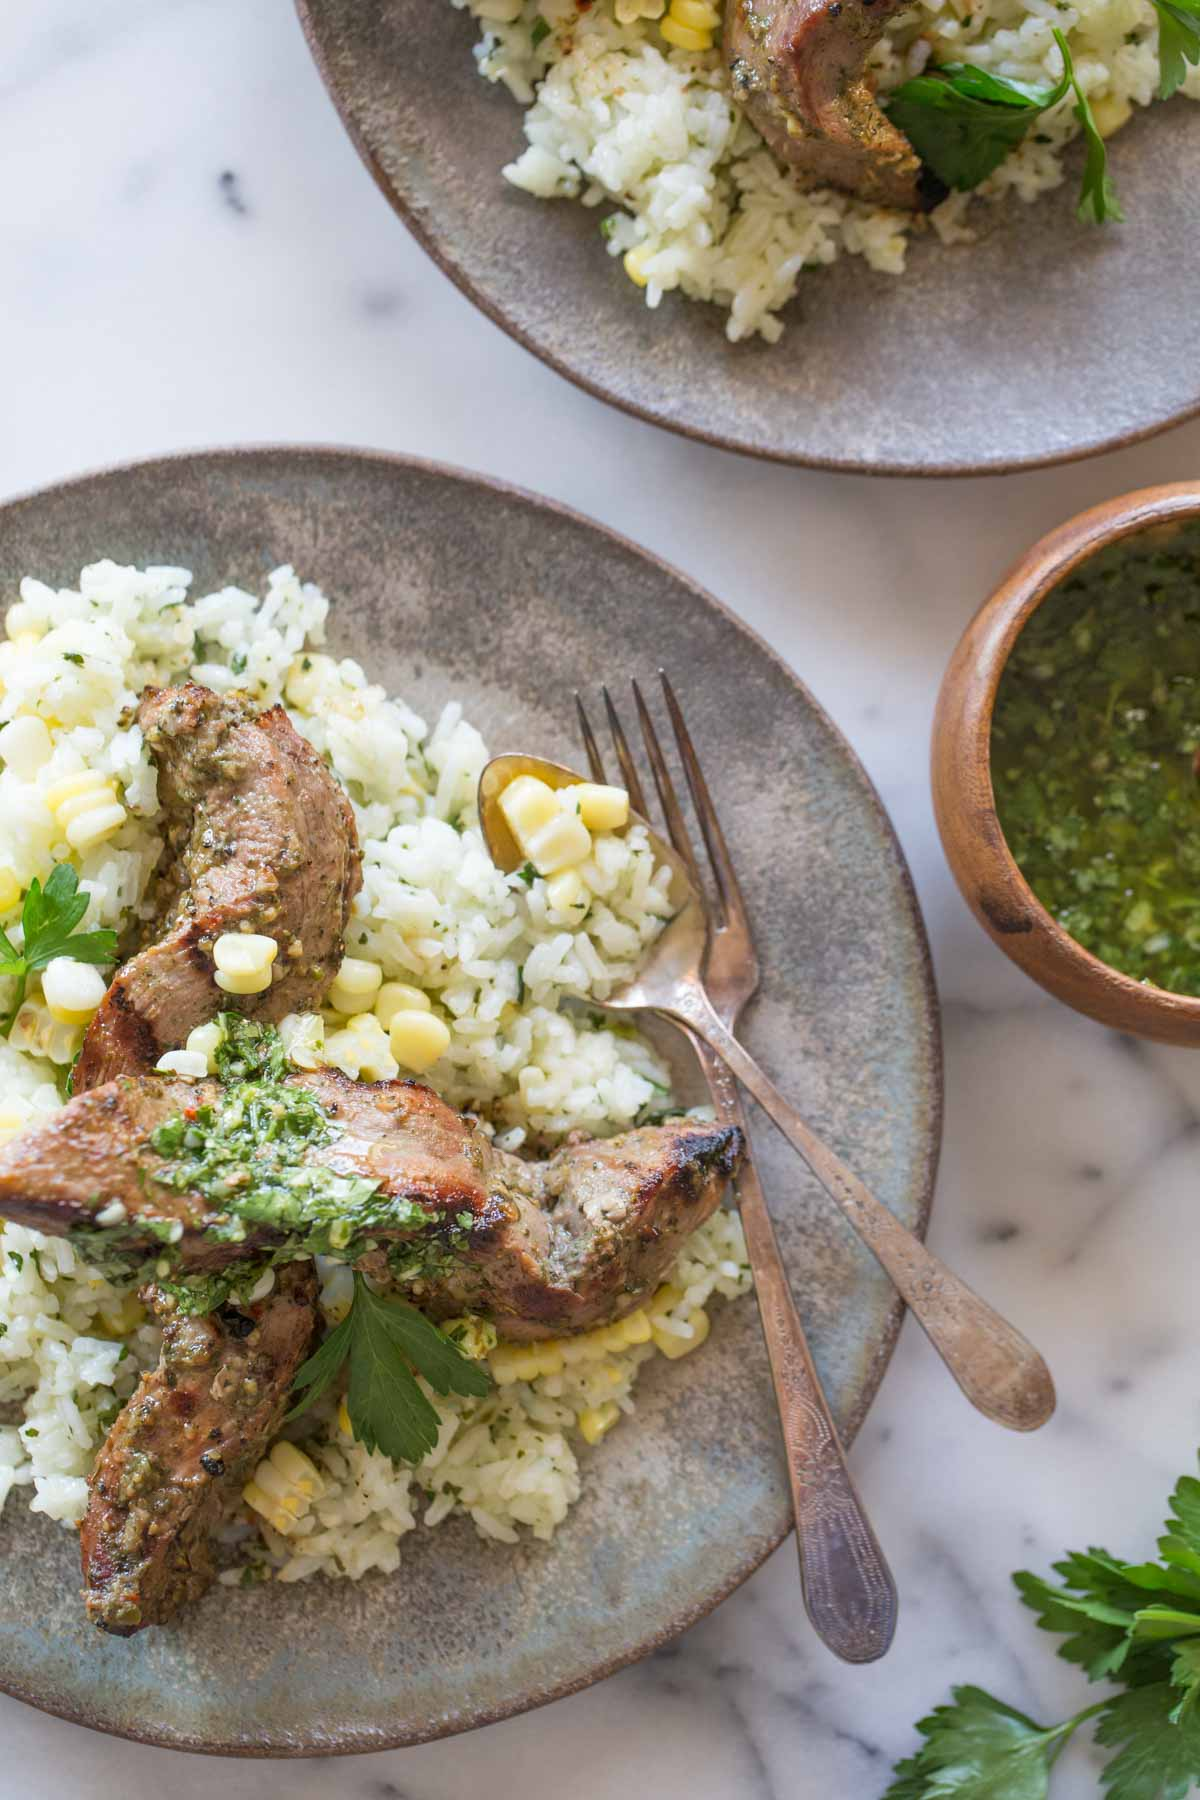 Brazilian Grilled Flank Steak resting on a bed of Chimichurri Rice, on a plate with a fork and a spoon, with another plate of Brazilian Grilled Flank Steak resting on a bed of Chimichurri Rice next to it, as well as a small bowl of chimichurri.